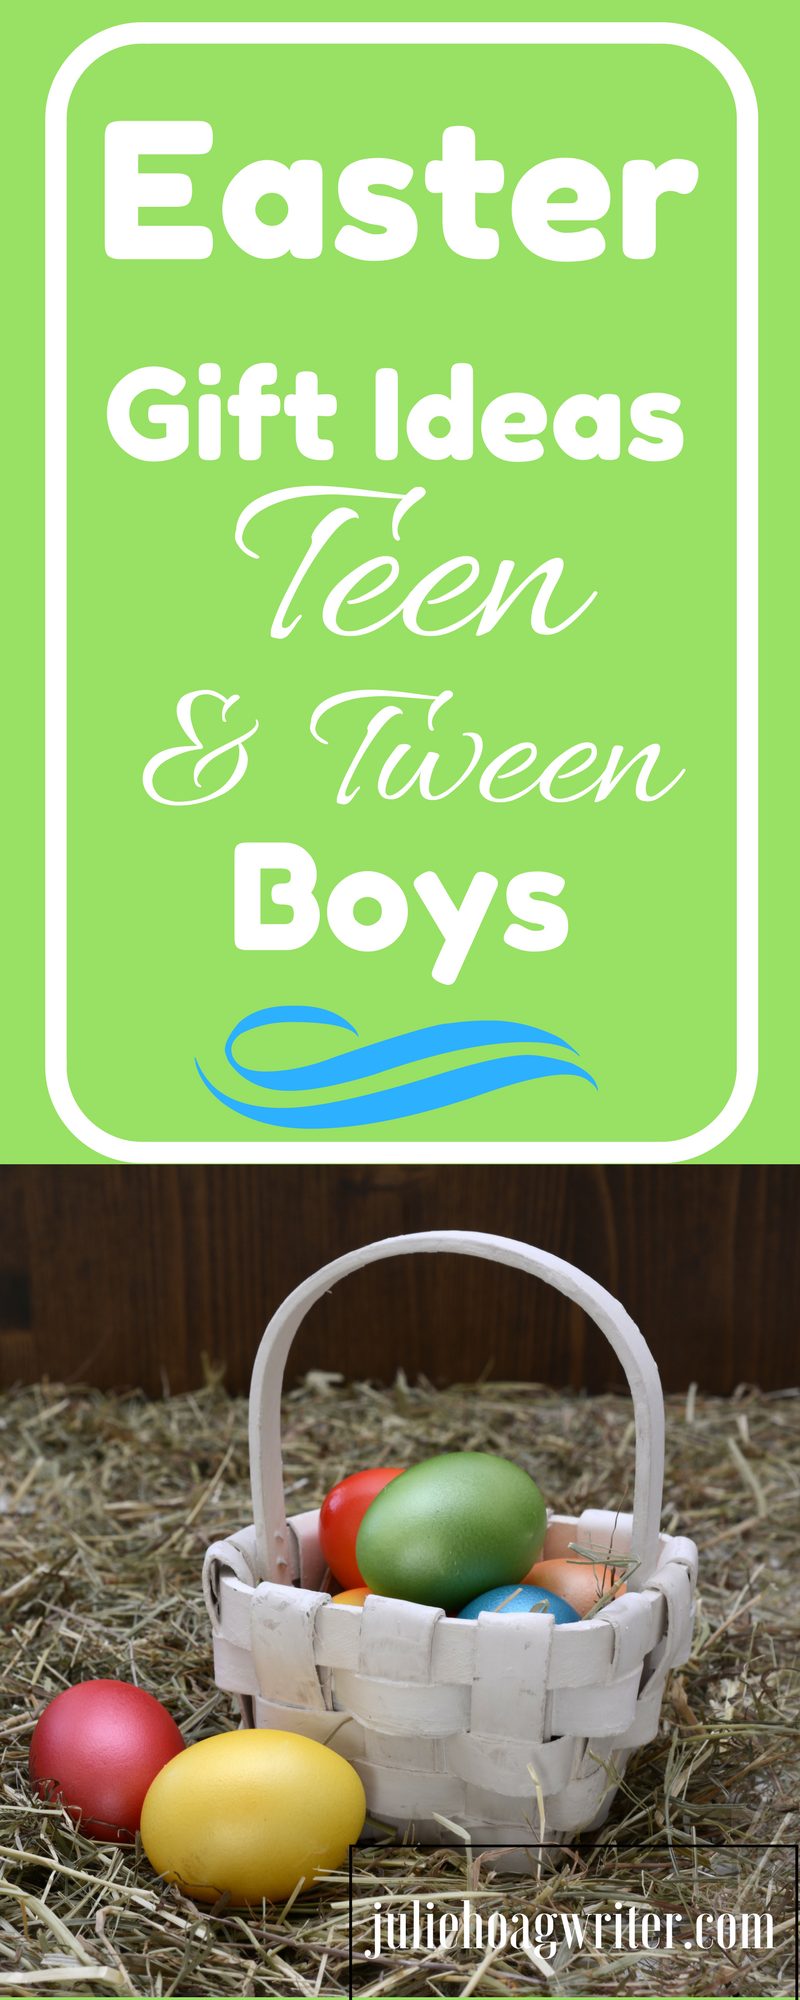 Easter gift ideas for teen and tween boys face light tween and easter easter gift ideas for teen and tween boys julie hoag writer negle Images